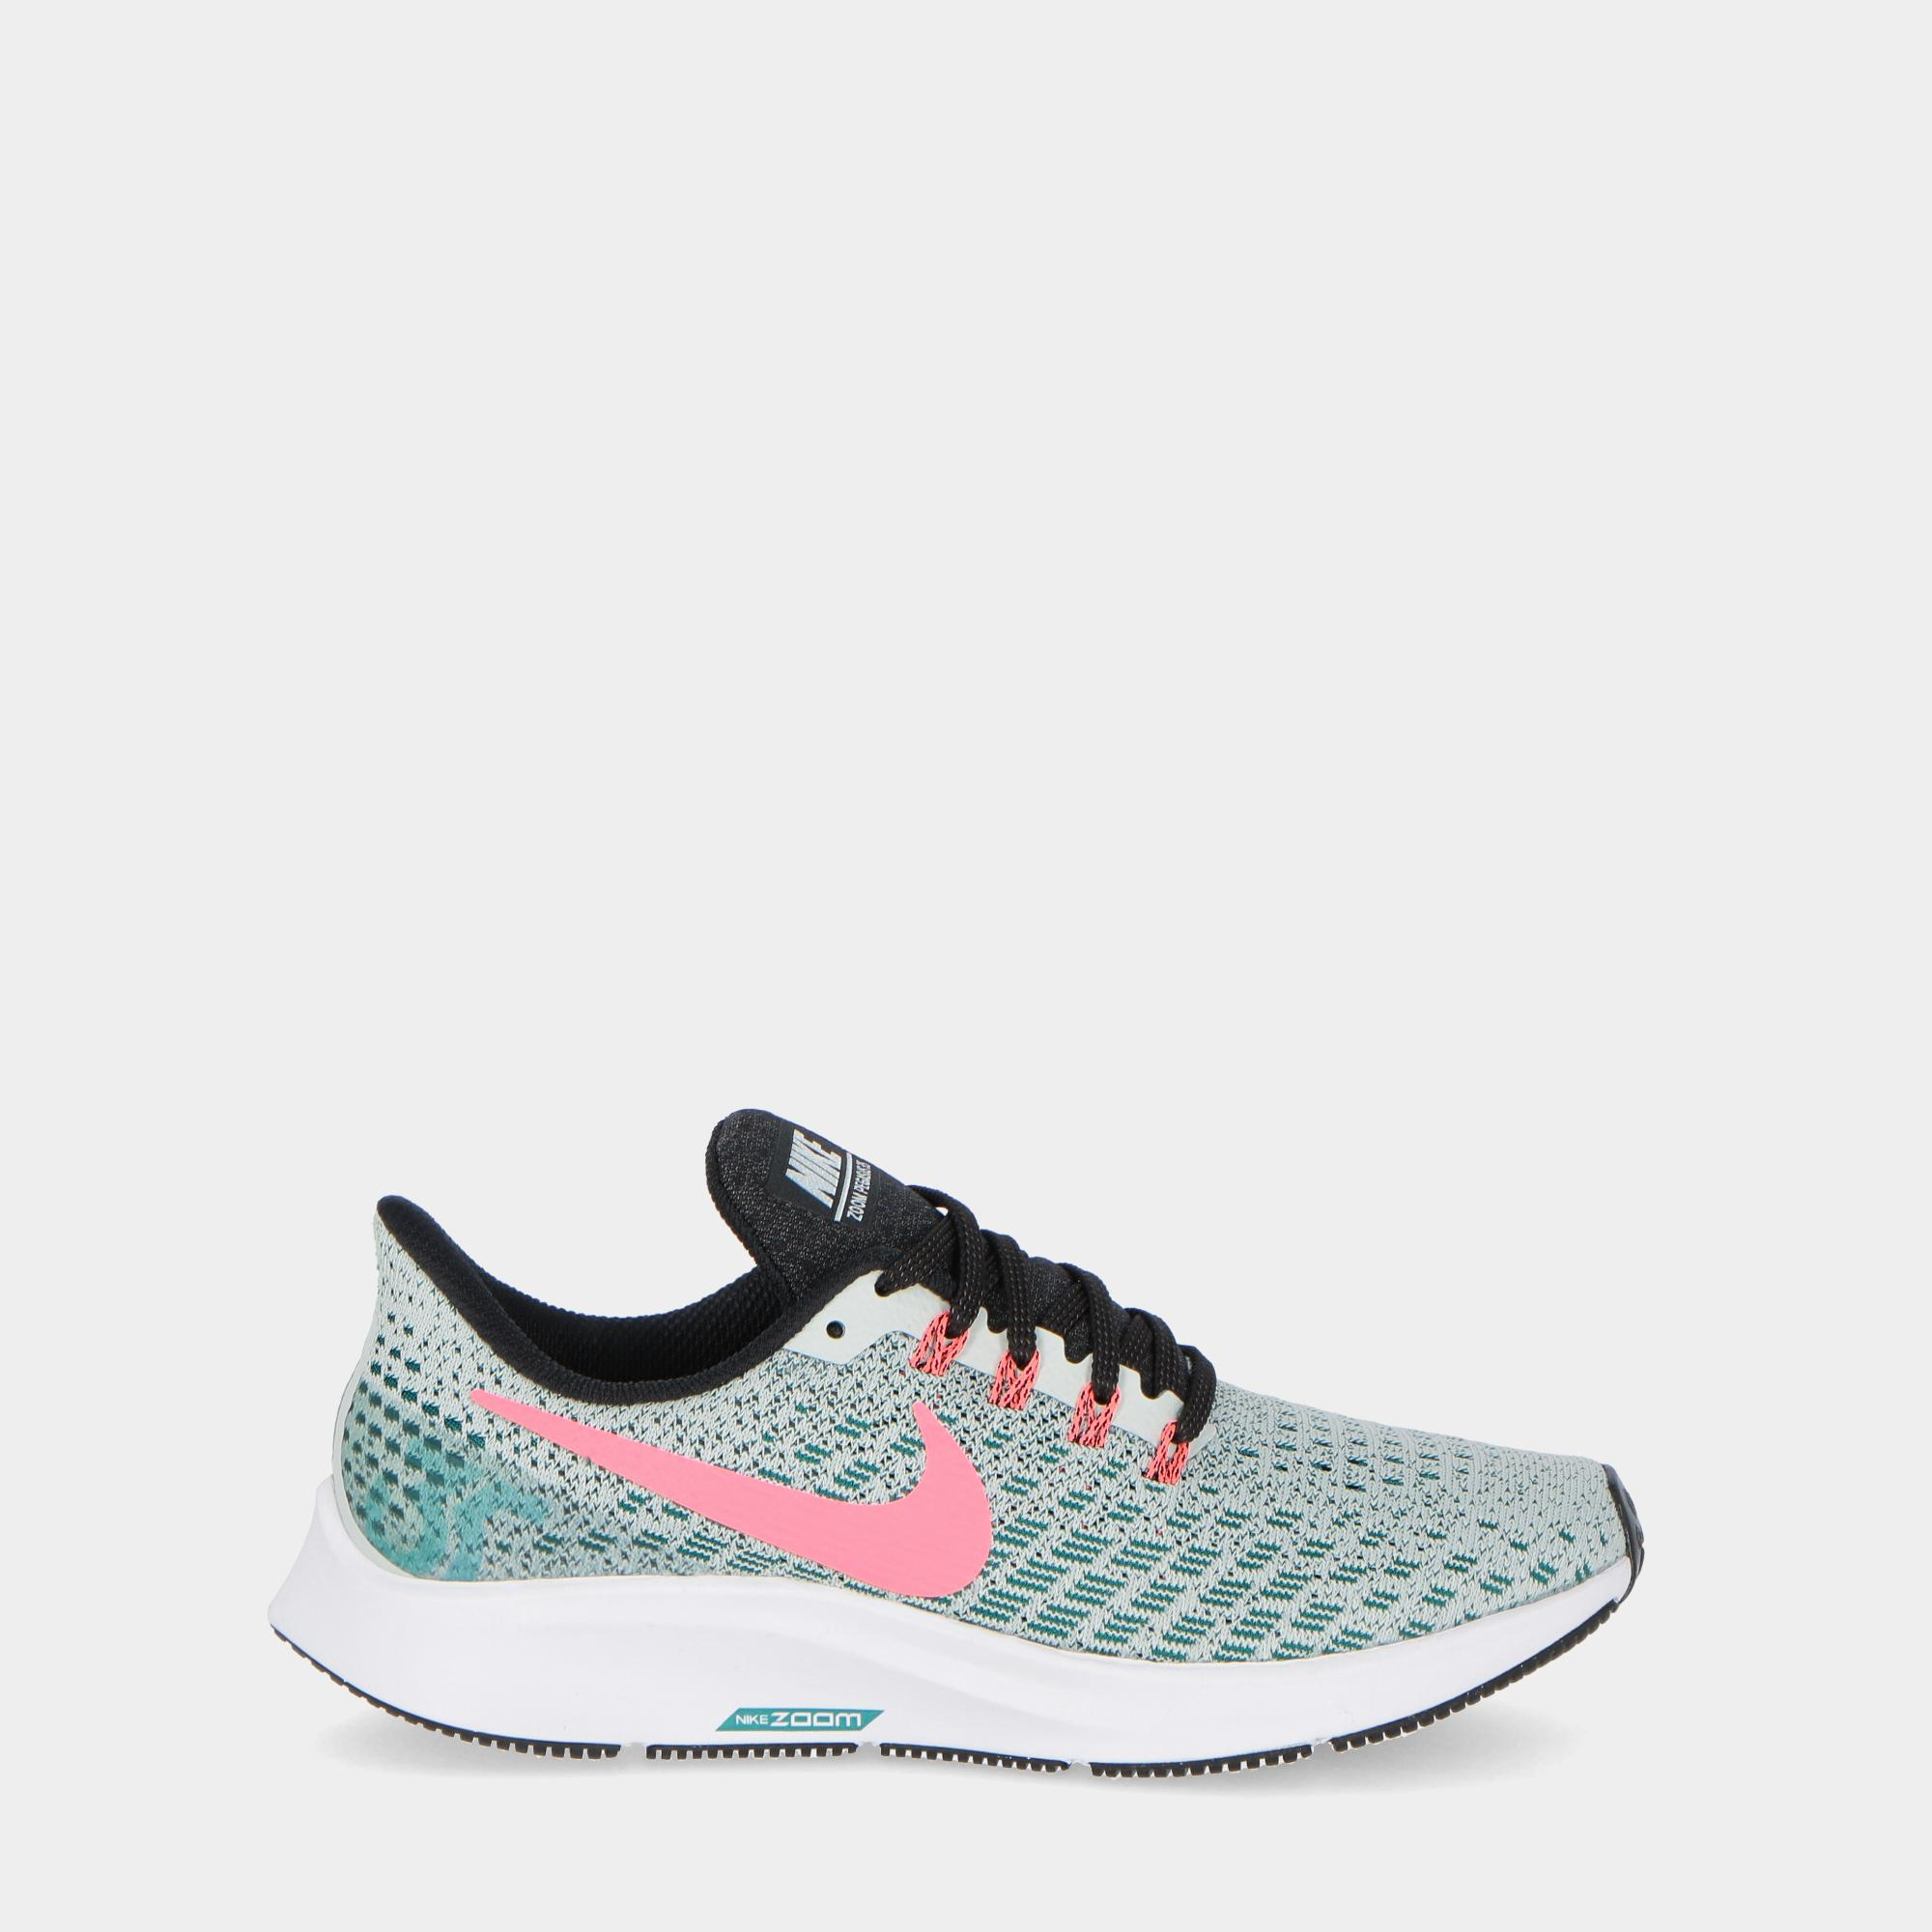 official photos d1172 22568 NIKE AIR ZOOM PEGASUS 35